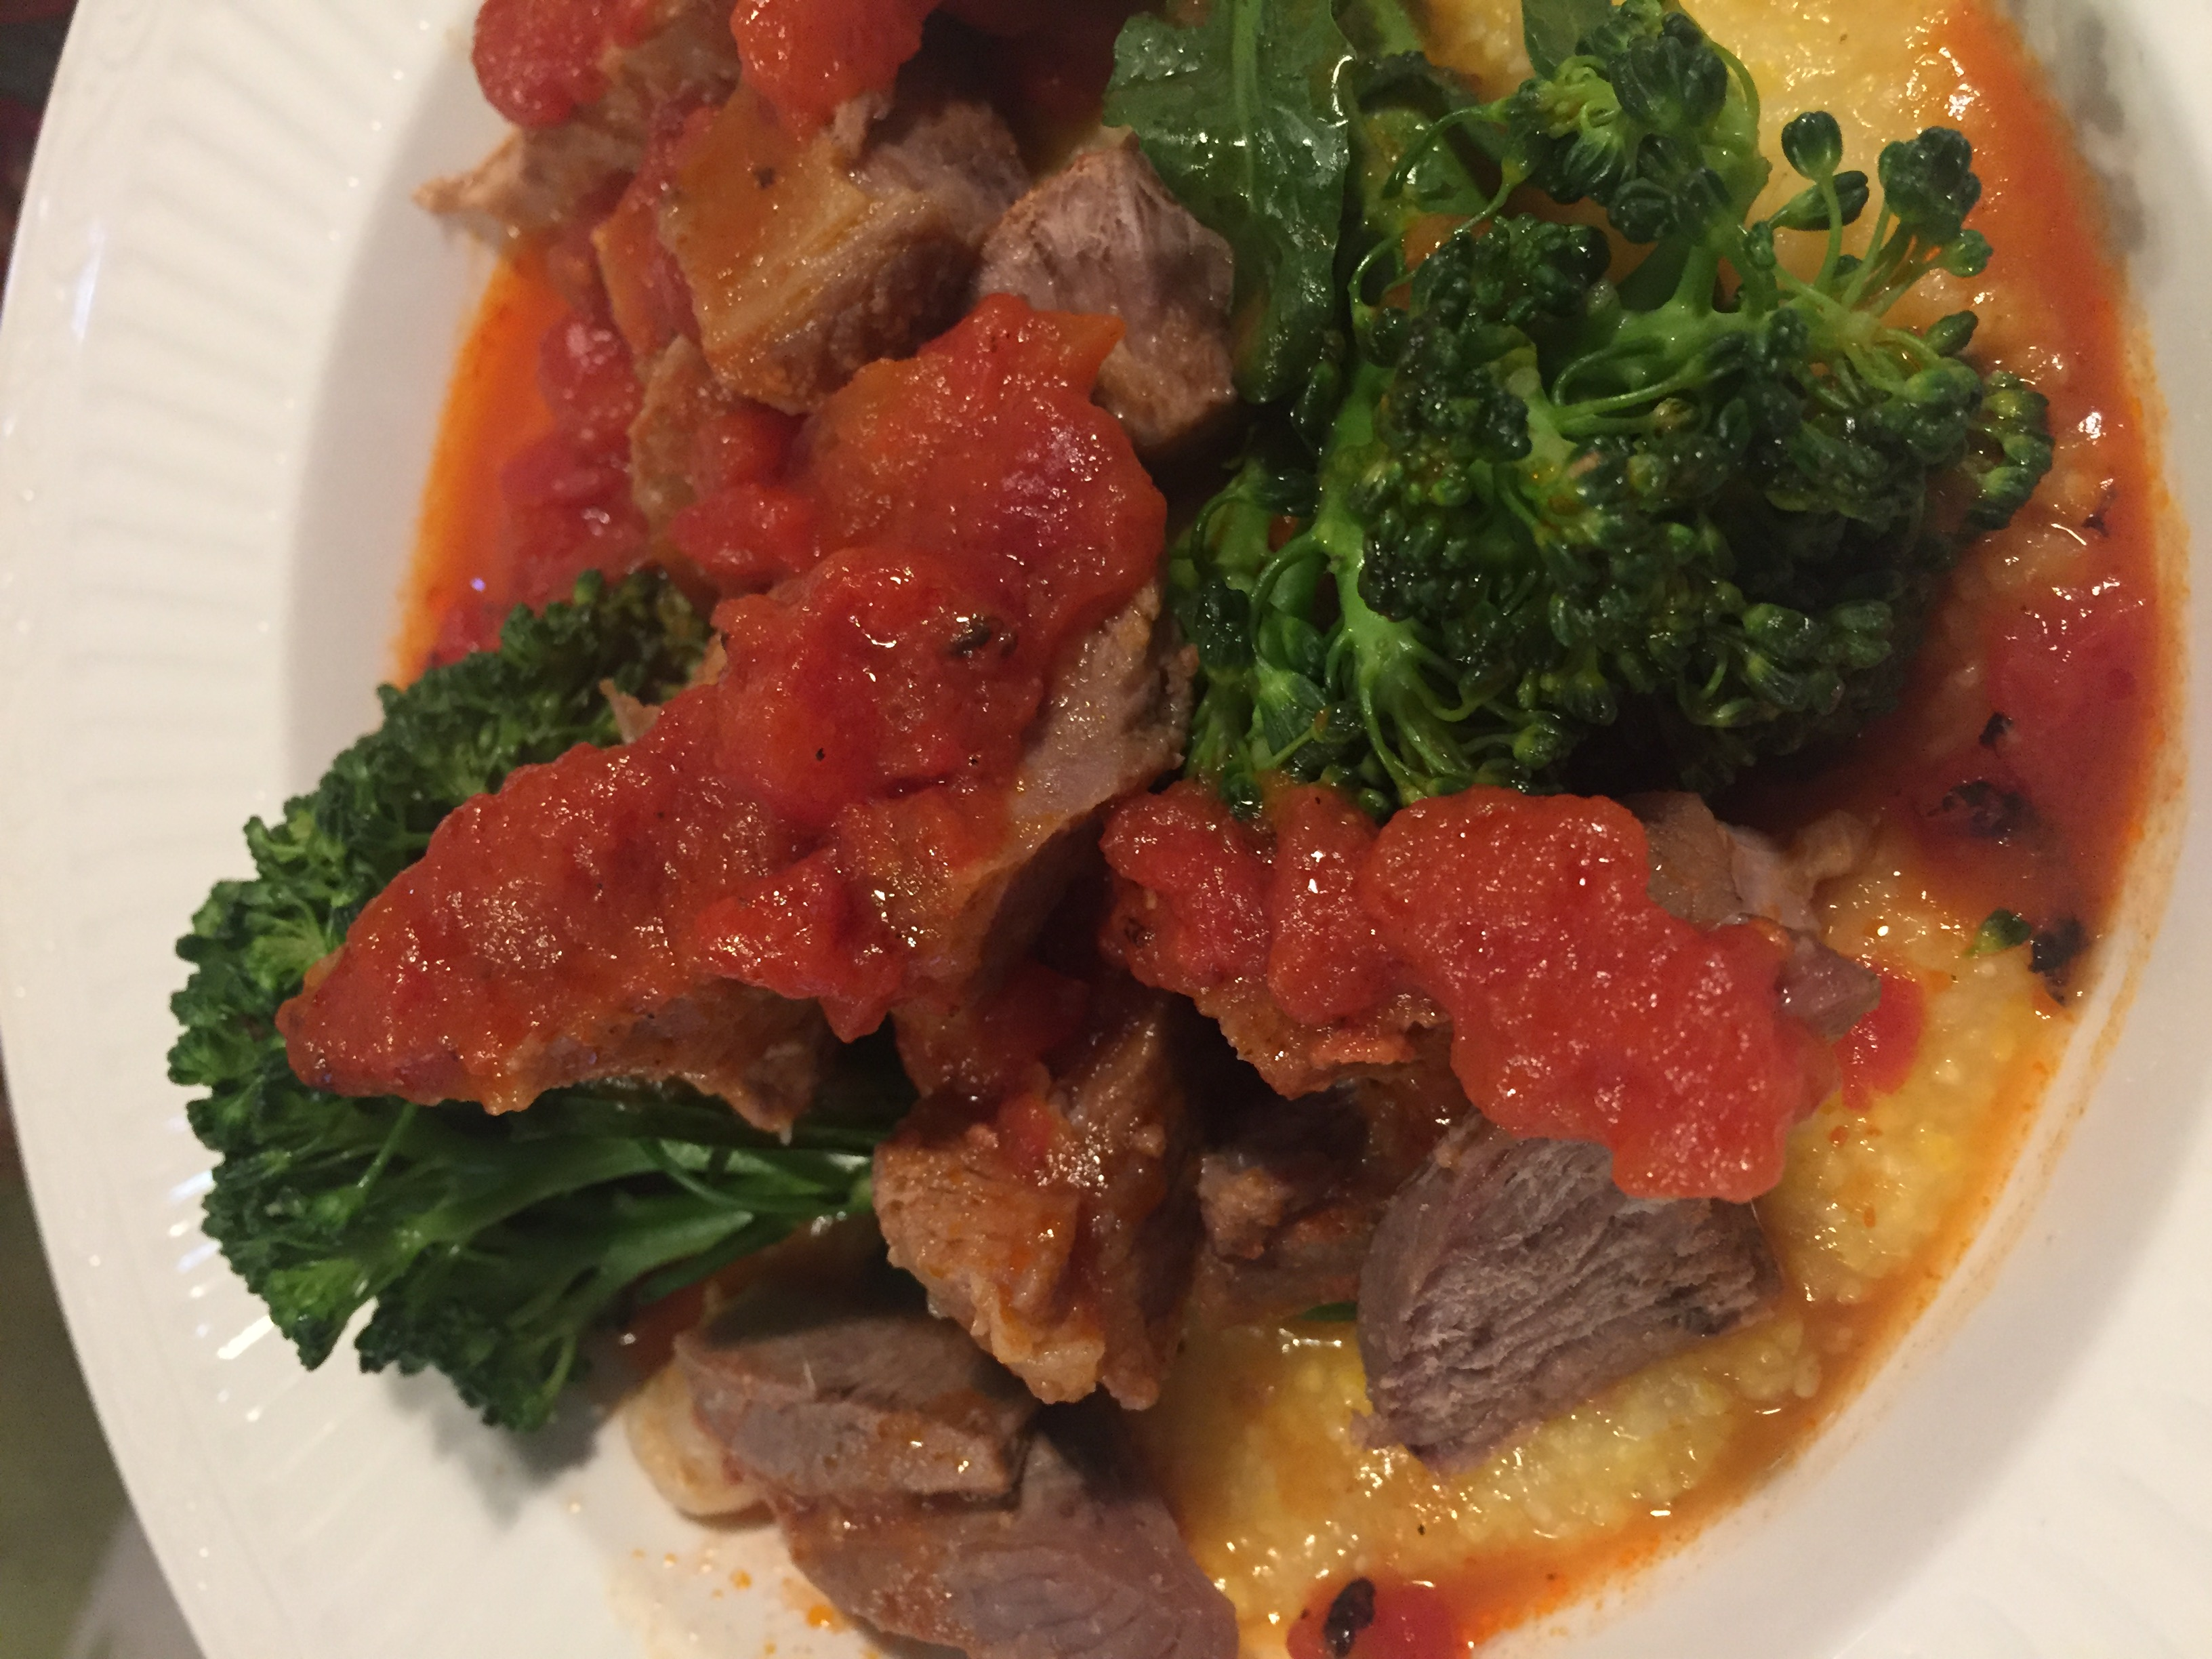 Lamb Steak with Polenta